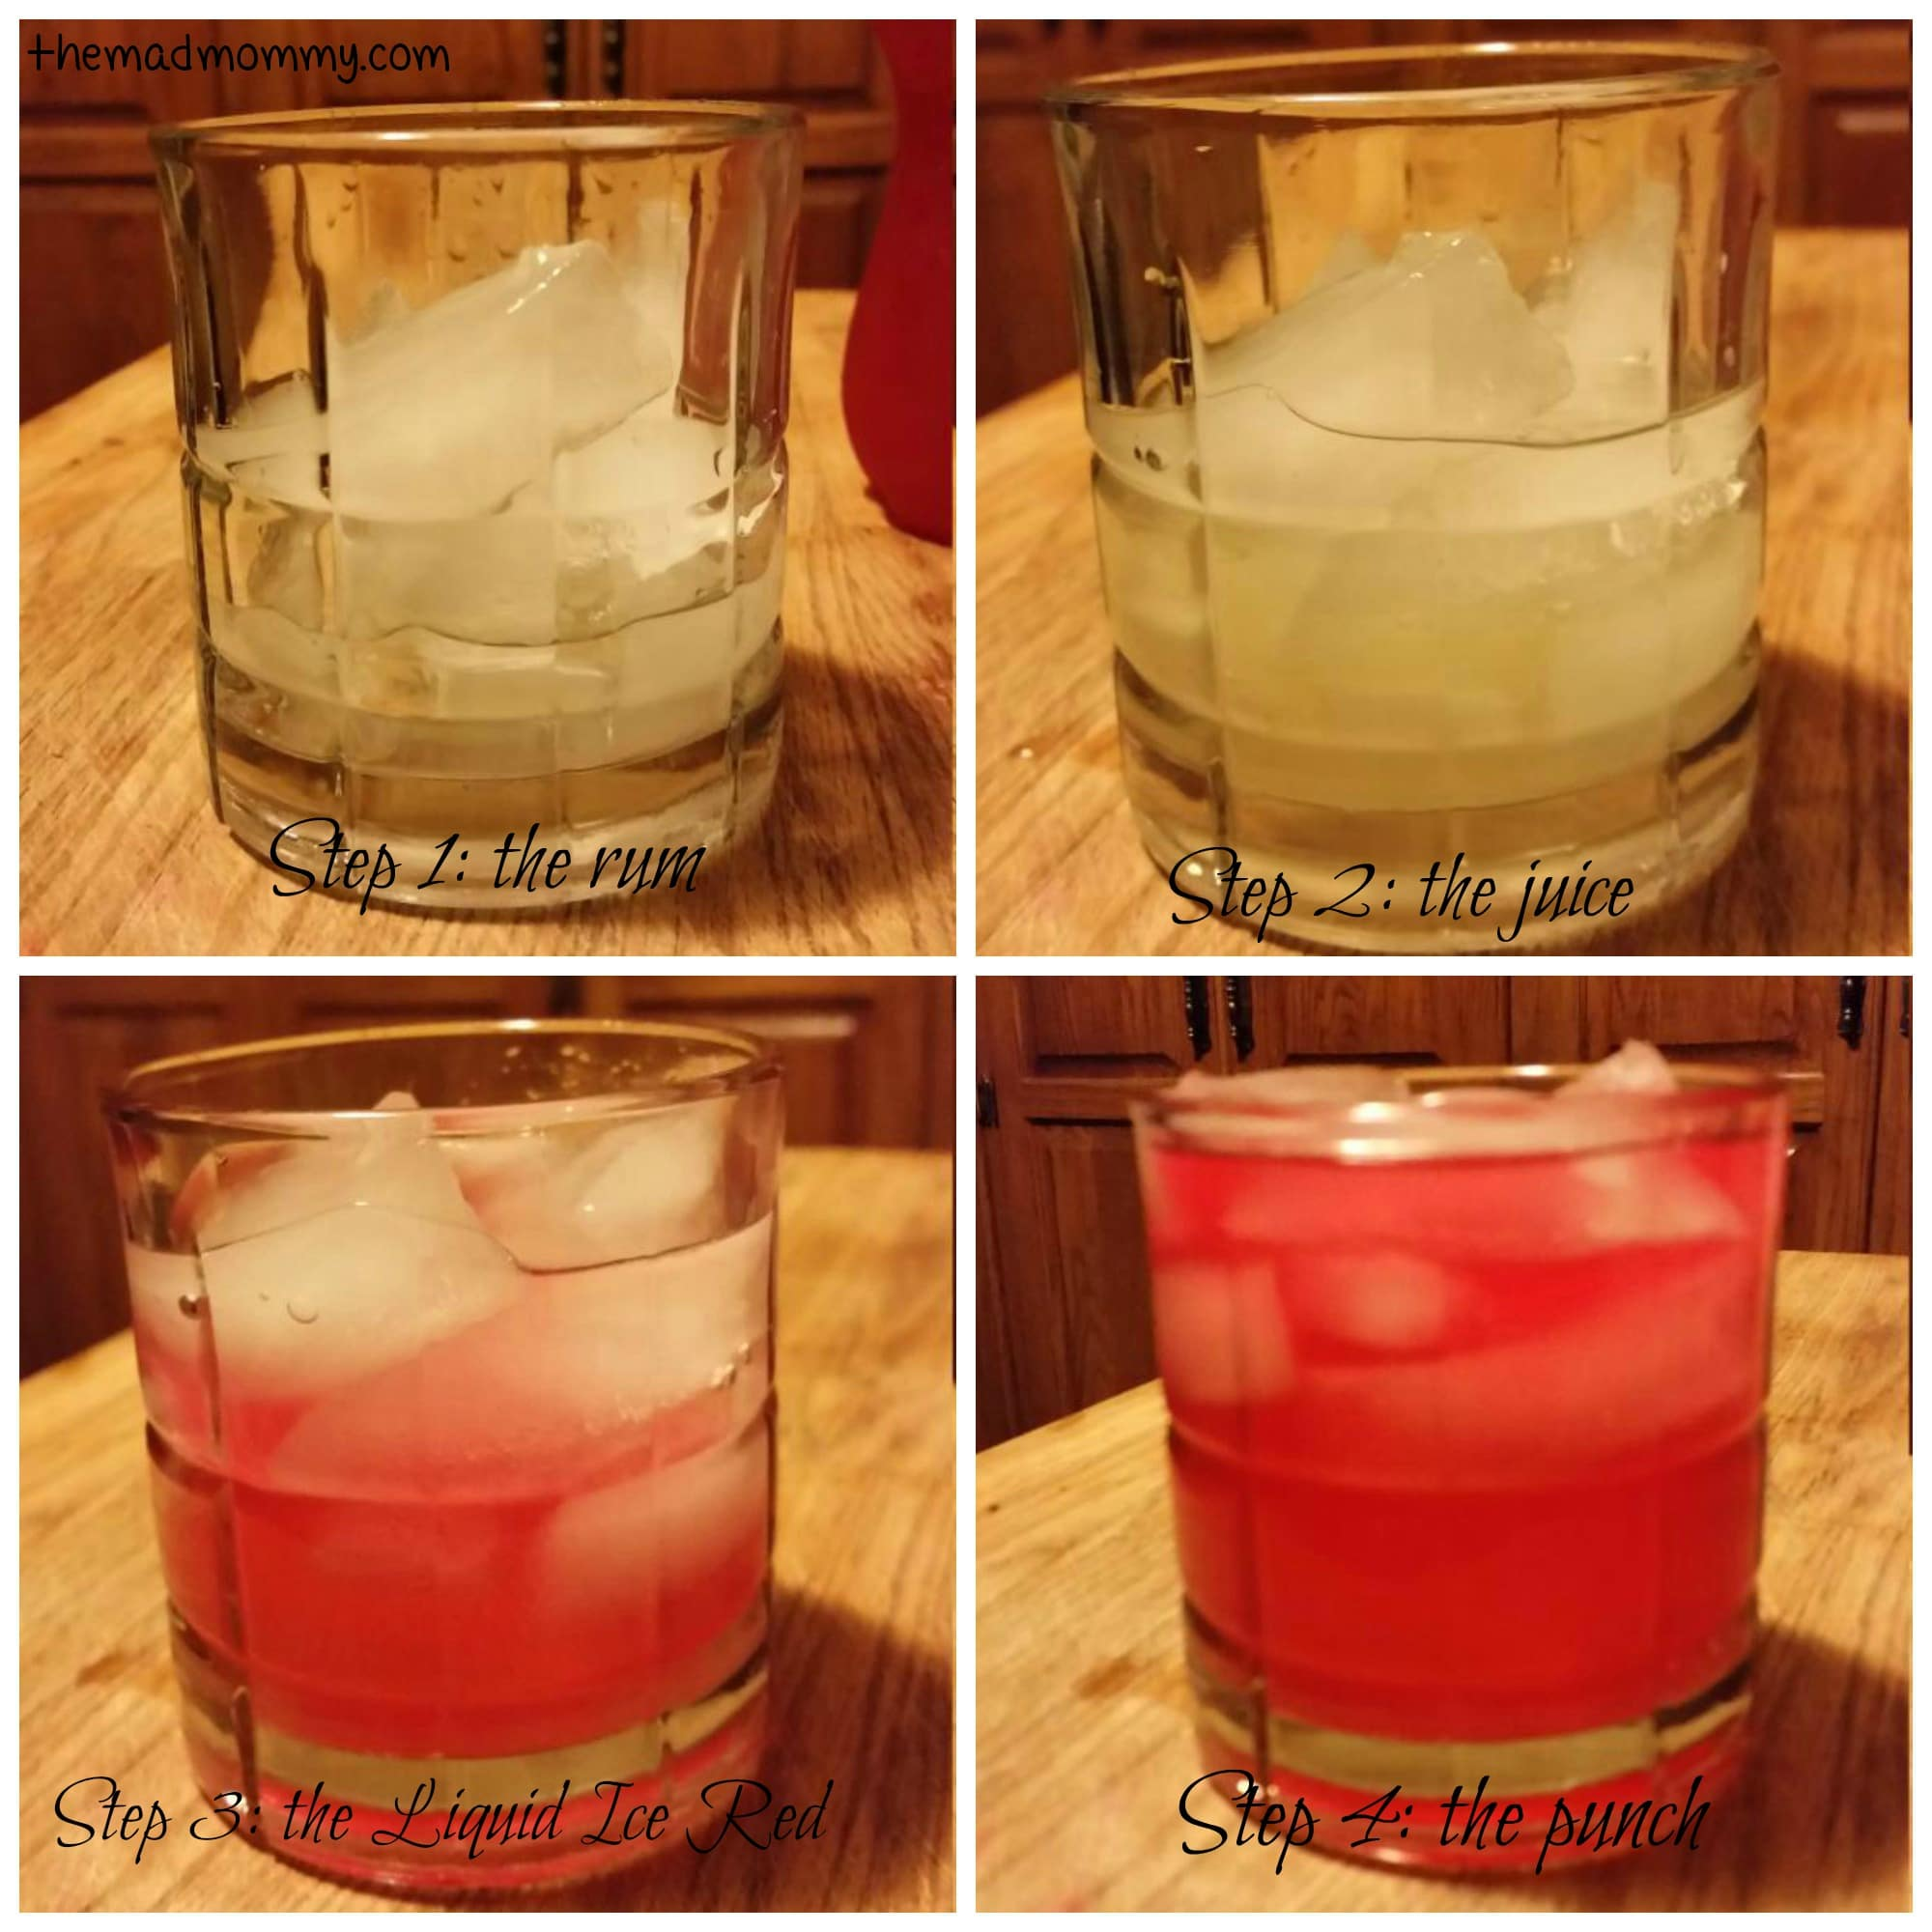 Cocktail with liquid ice red for Liquid ice mixed drinks